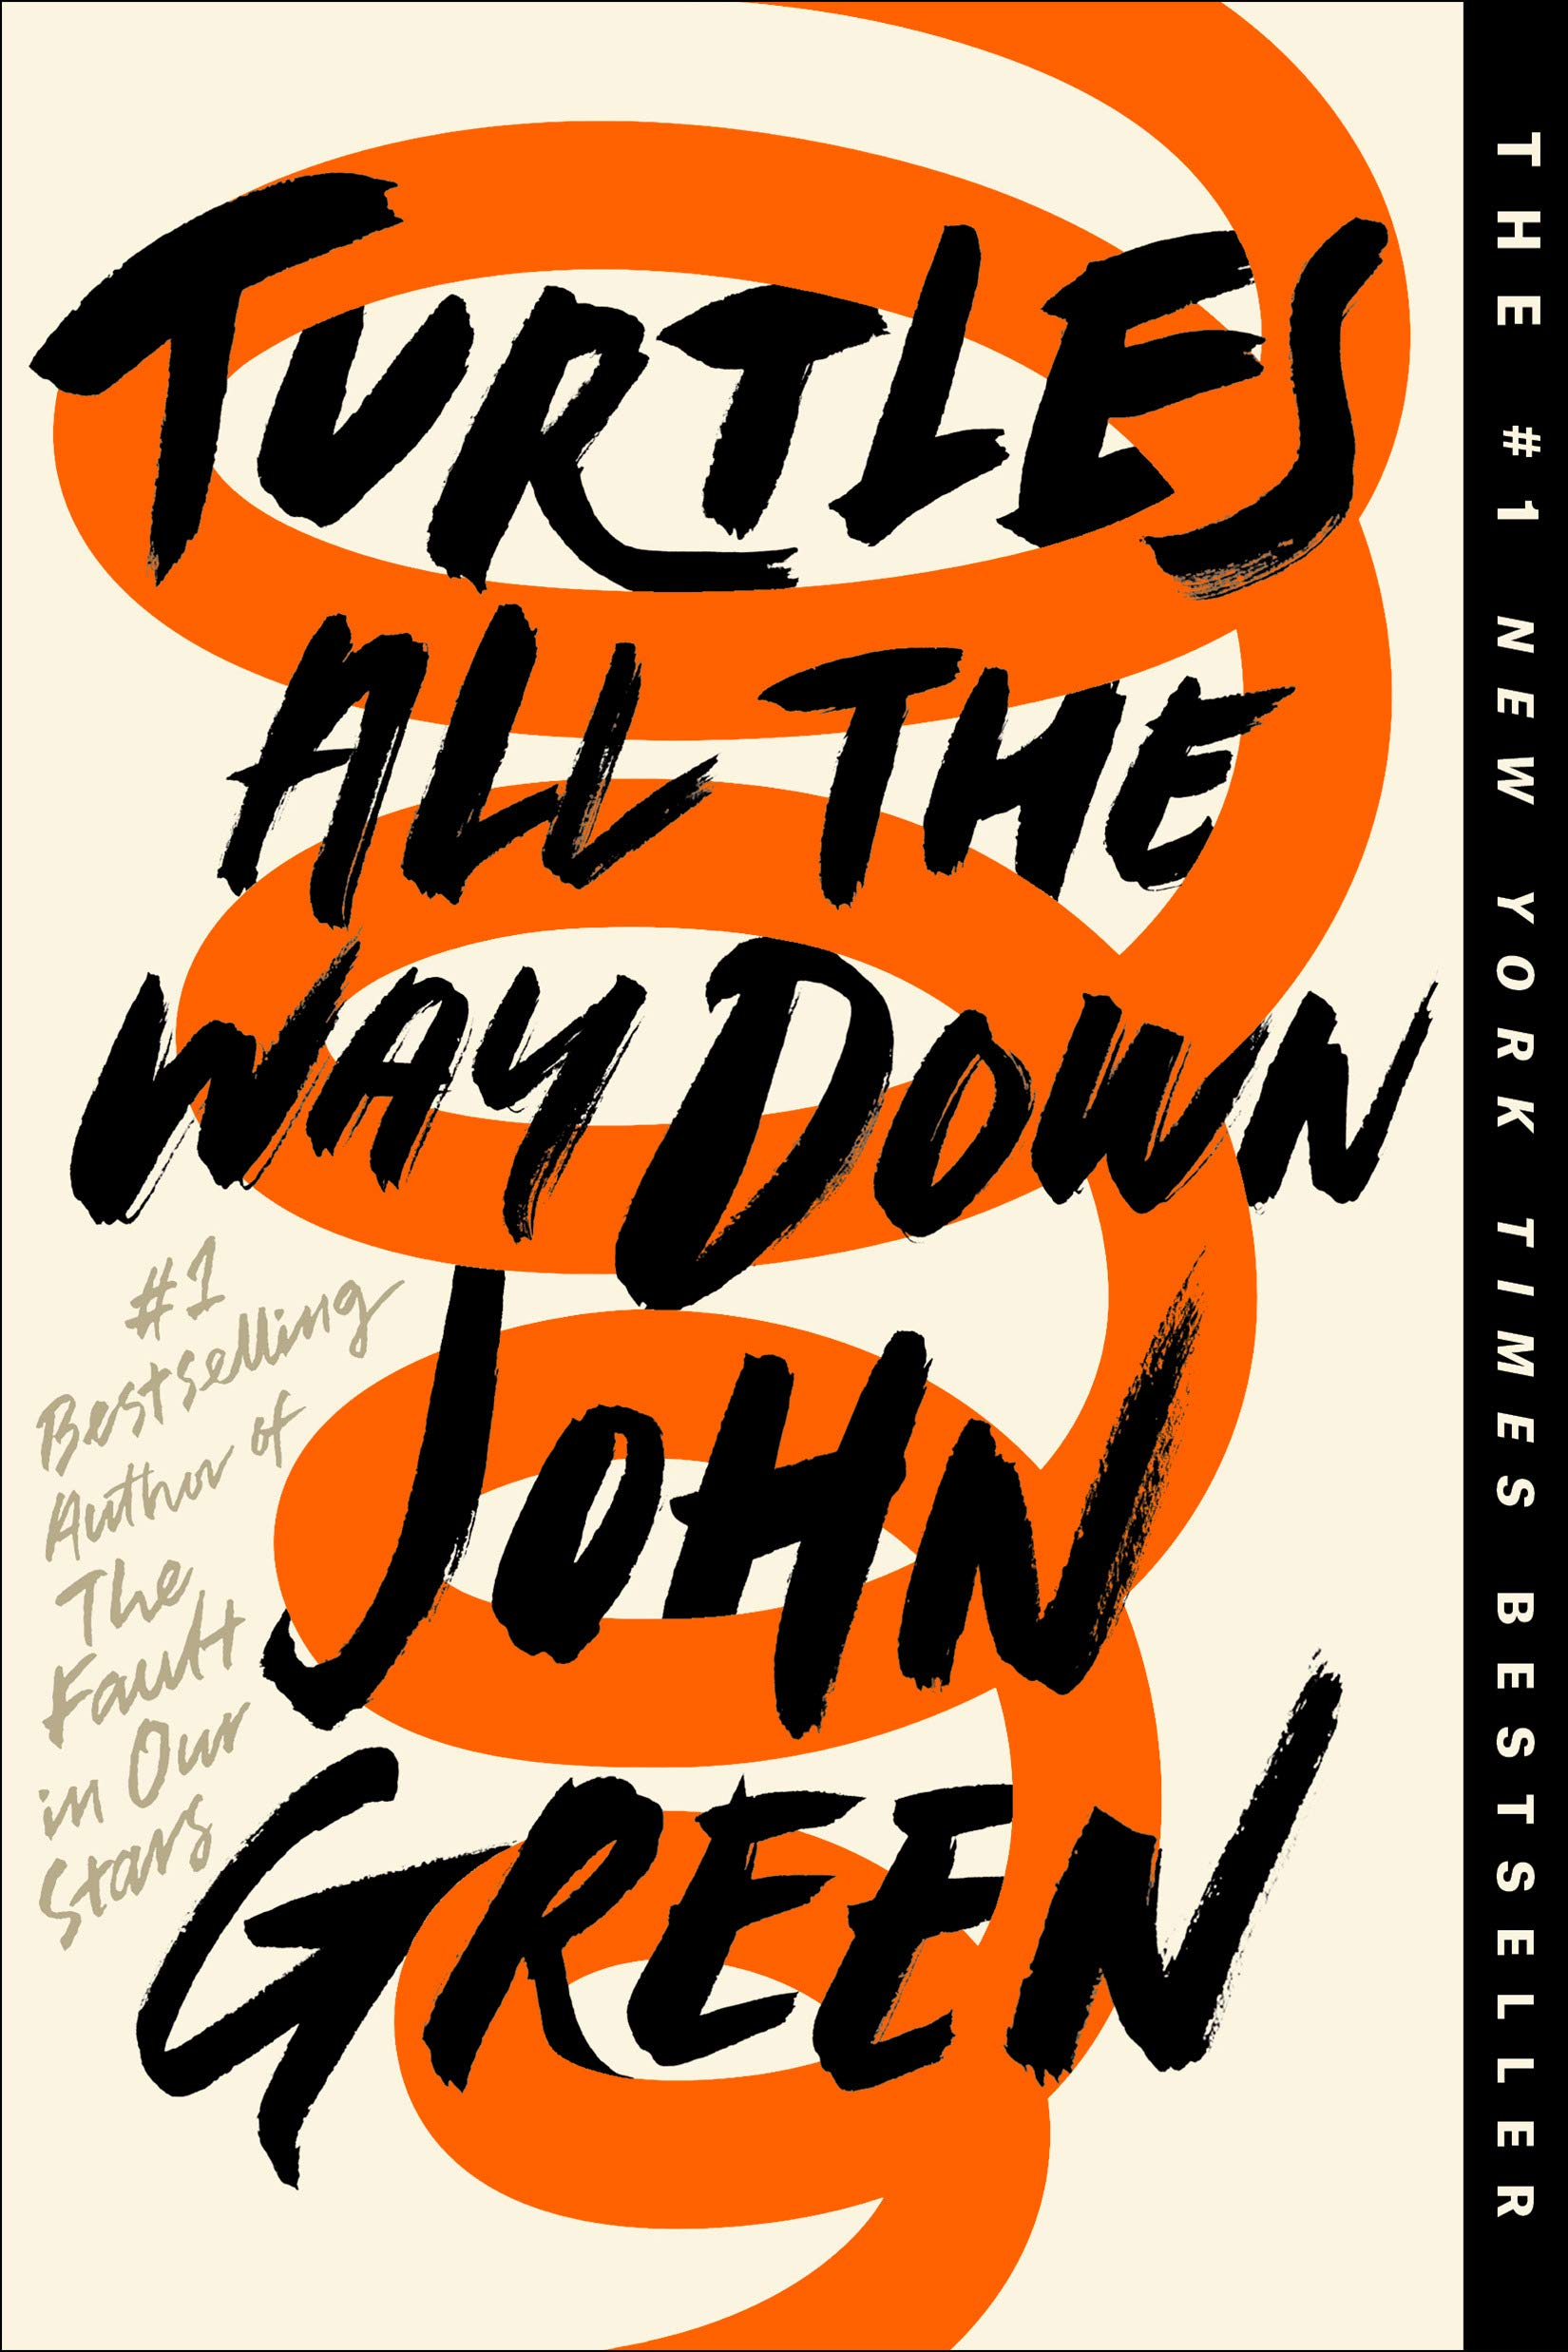 Turtles All Down John Green